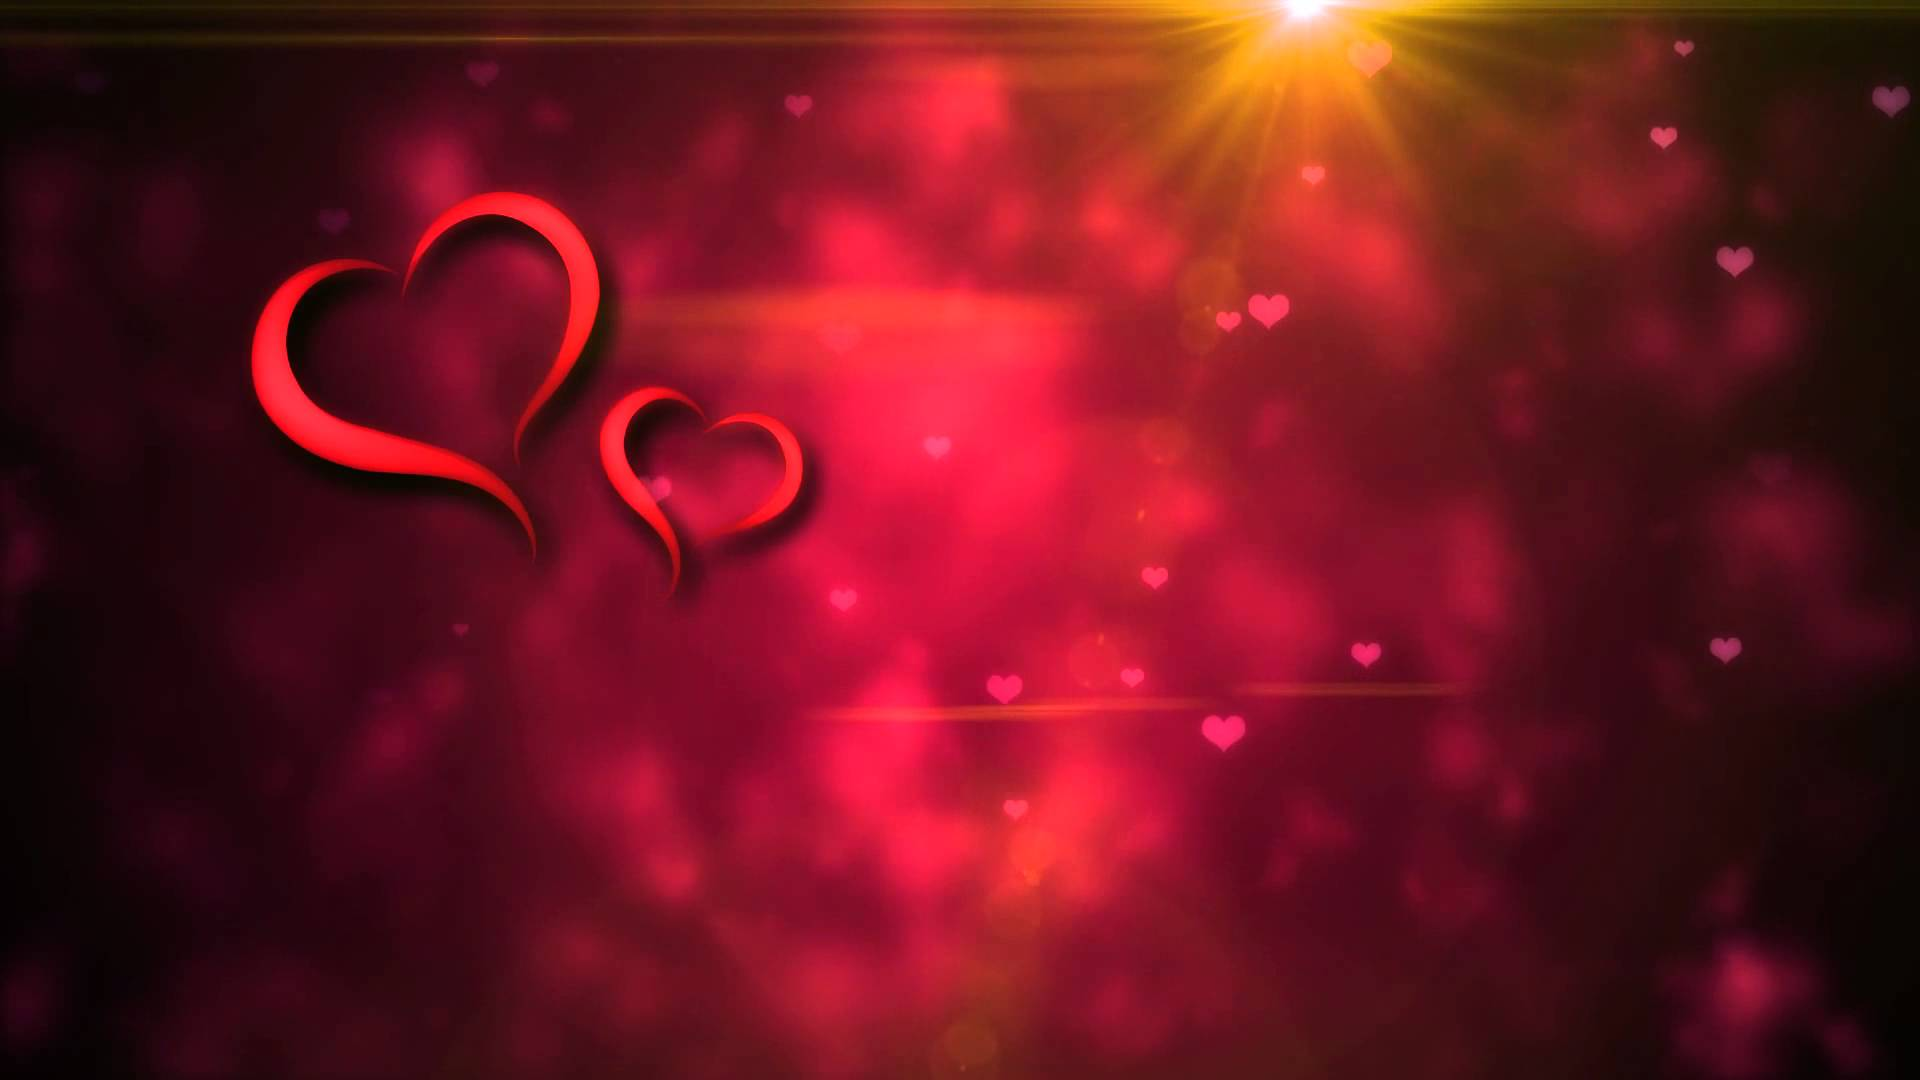 Best Love Wallpaper Dow : Hd Wedding Backgrounds - WallpaperSafari